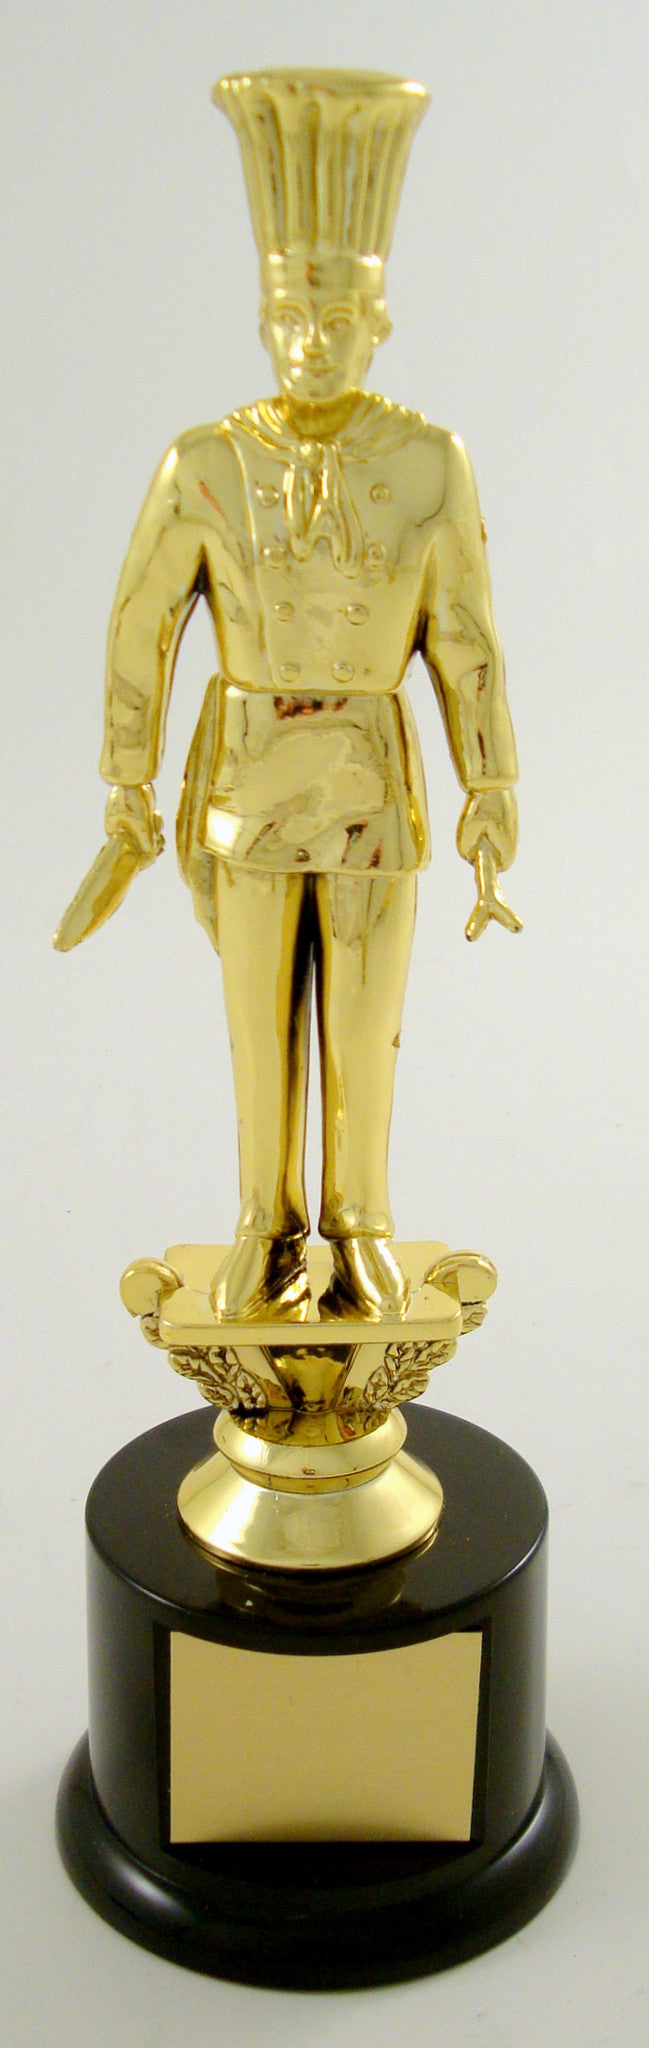 Chef Trophy Figure On Black Round Base-Trophies-Schoppy's Since 1921